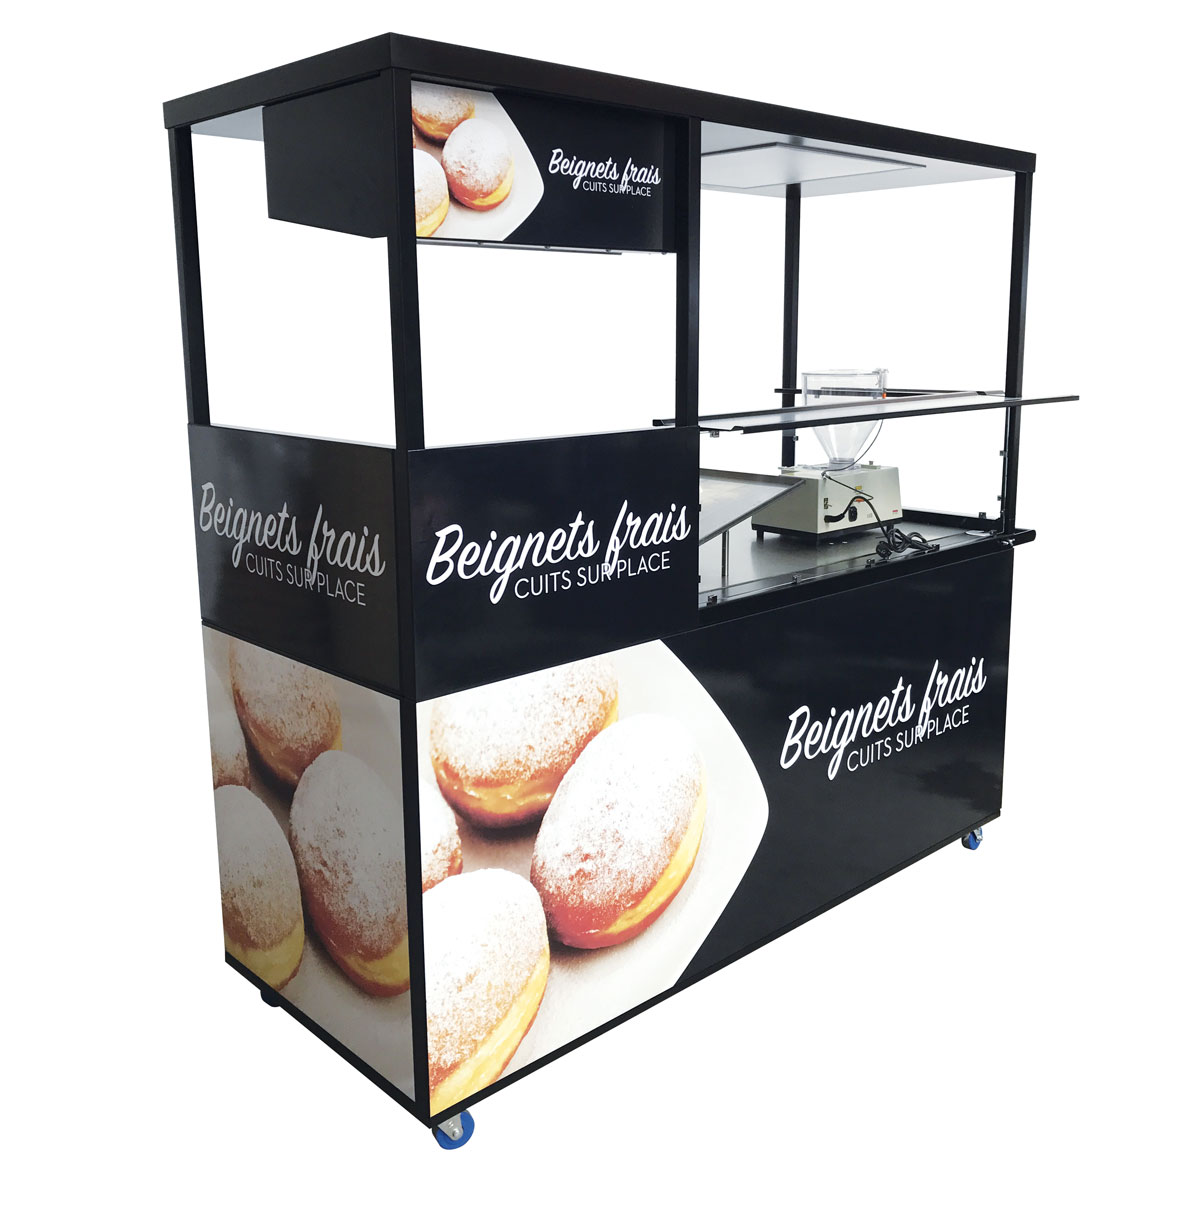 Concept for jam and ring doughnuts